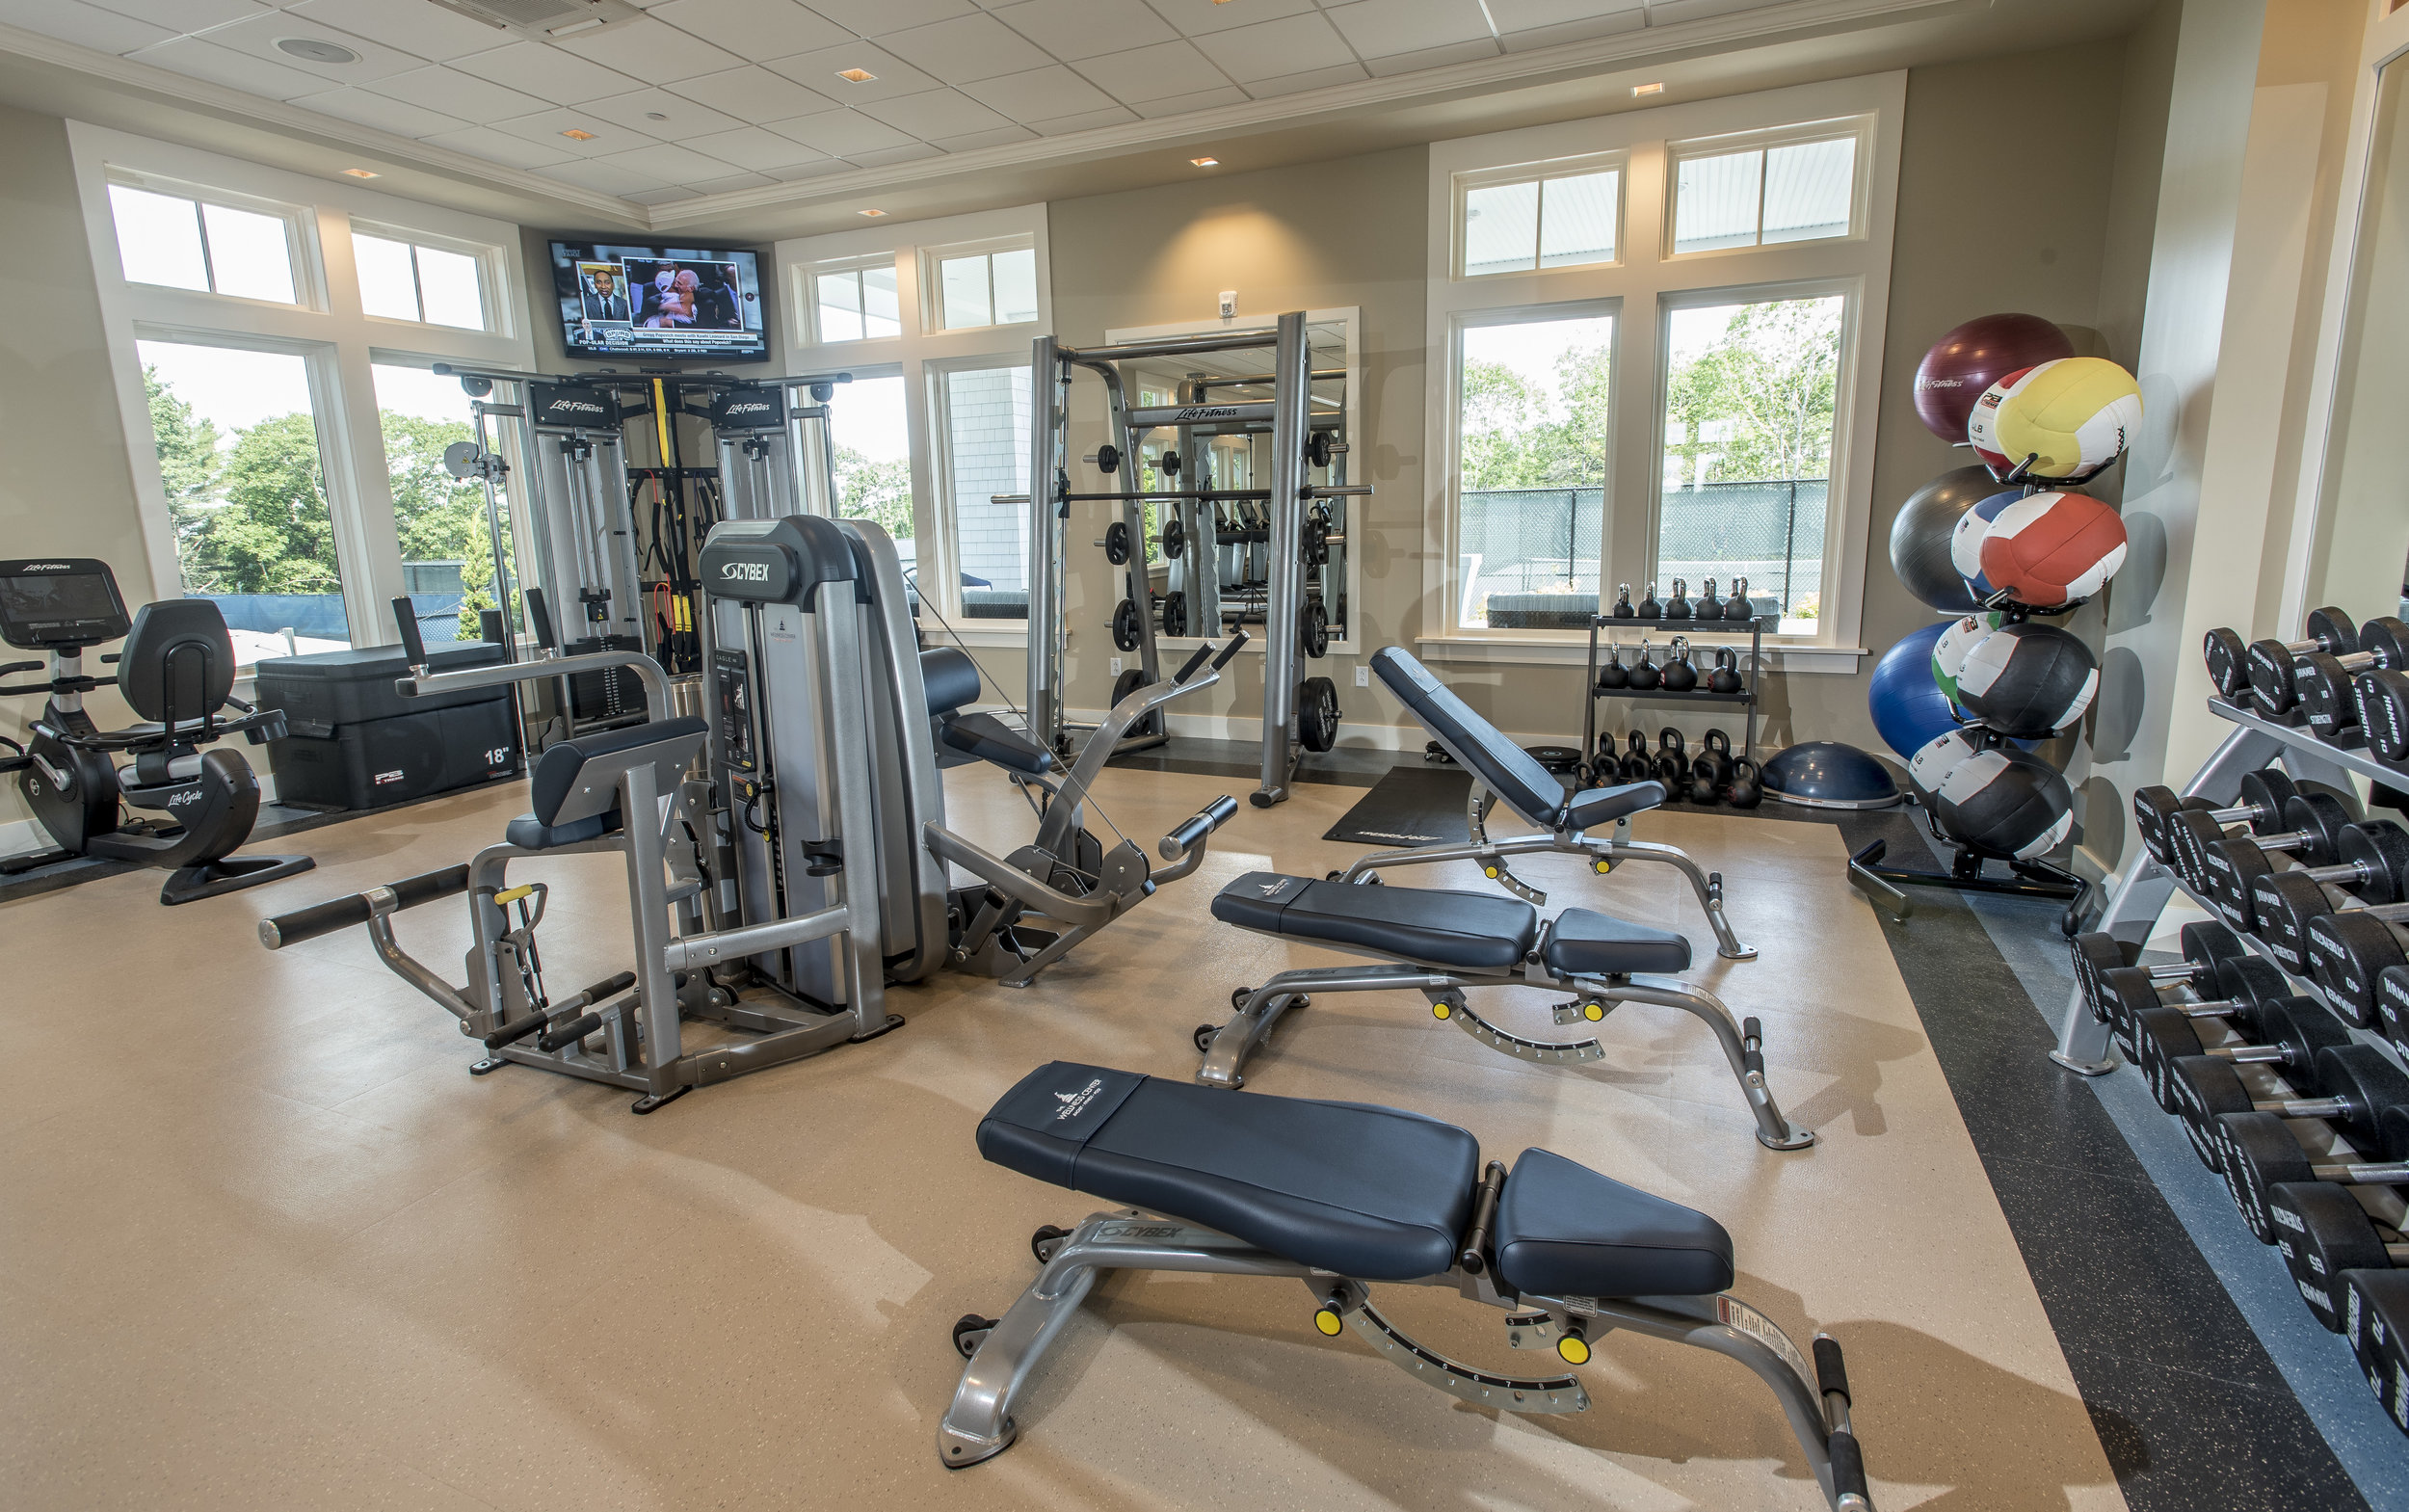 1,800 square foot fitness room